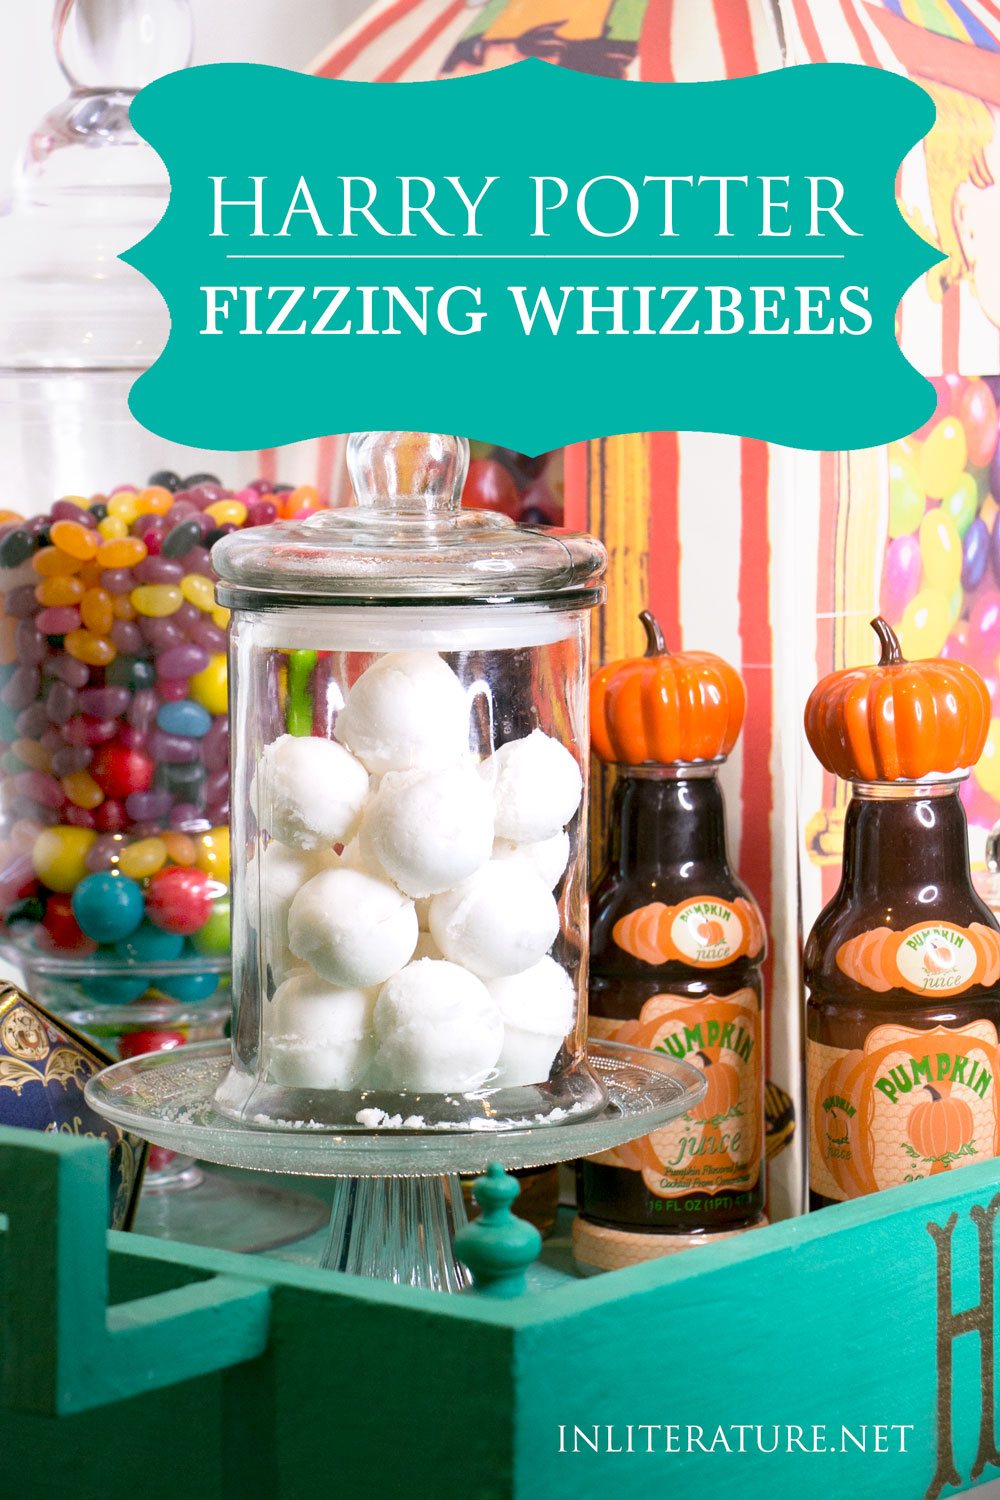 Make super simple fizzing whizbees like they're described in the Harry Potter series, sherbet balls. Unfortunately, we can't help you with the levitating part, though!